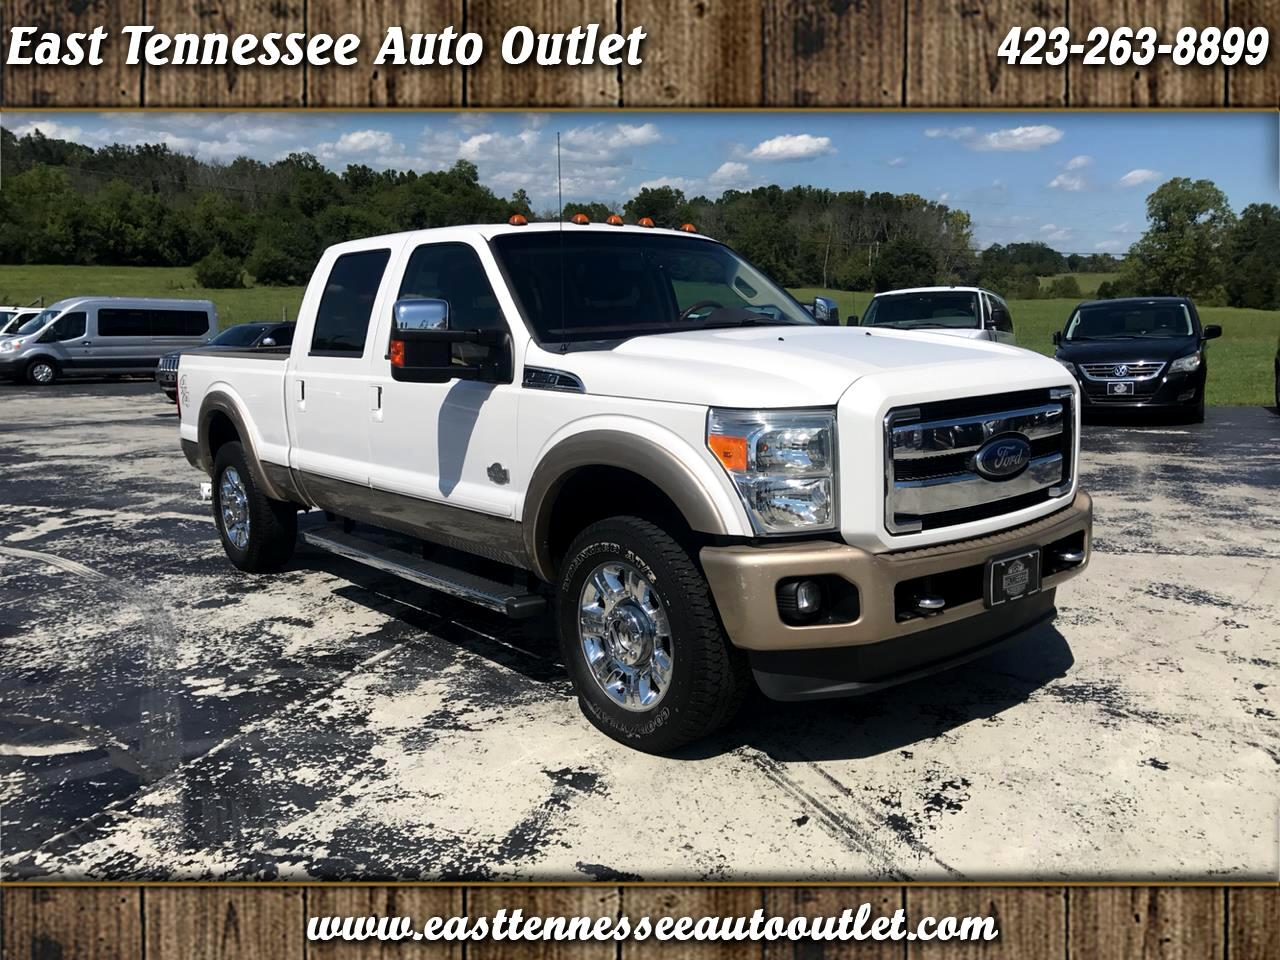 2012 Ford Super Duty F-250 SRW King Ranch 4WD Crew Cab 6.75' Box